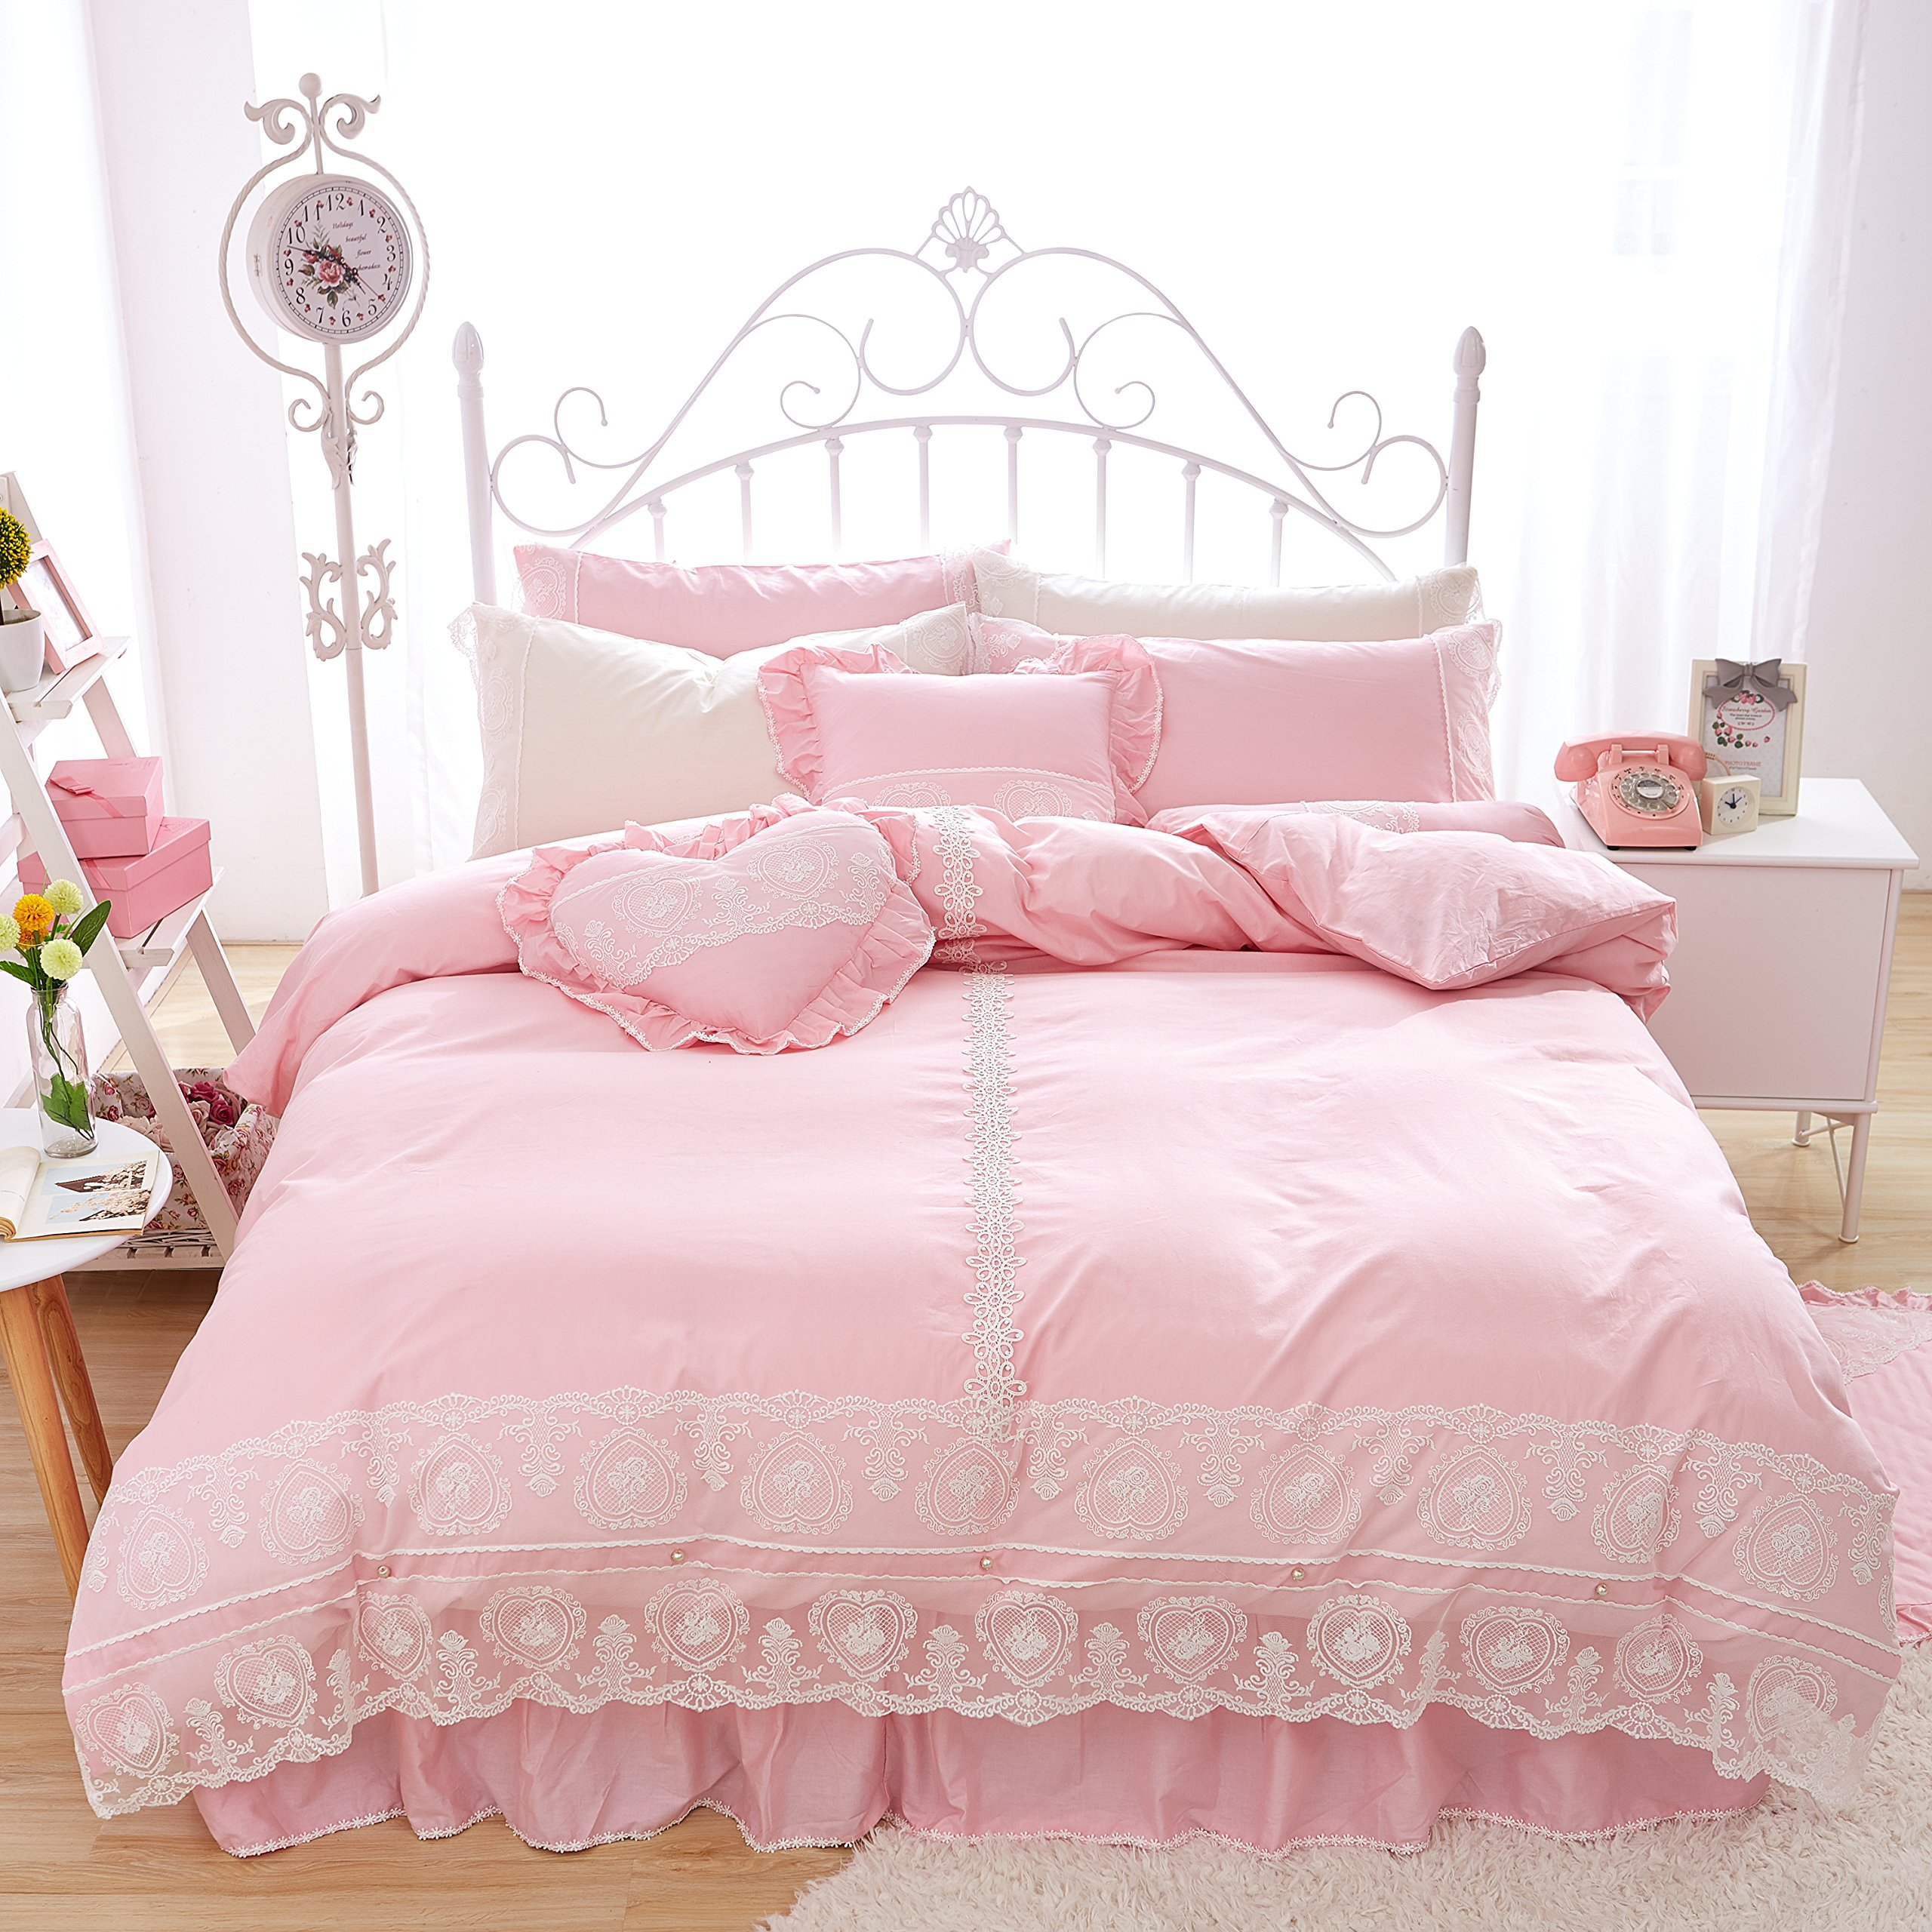 FADFAY Home Textile,Beautiful Korean Lace Bedding Sets,Luxury Girls Pink Lace Ruffle Bedding Sets,Romantic Princess Wedding Bedding Set,Girls Fairy Bedding Sets